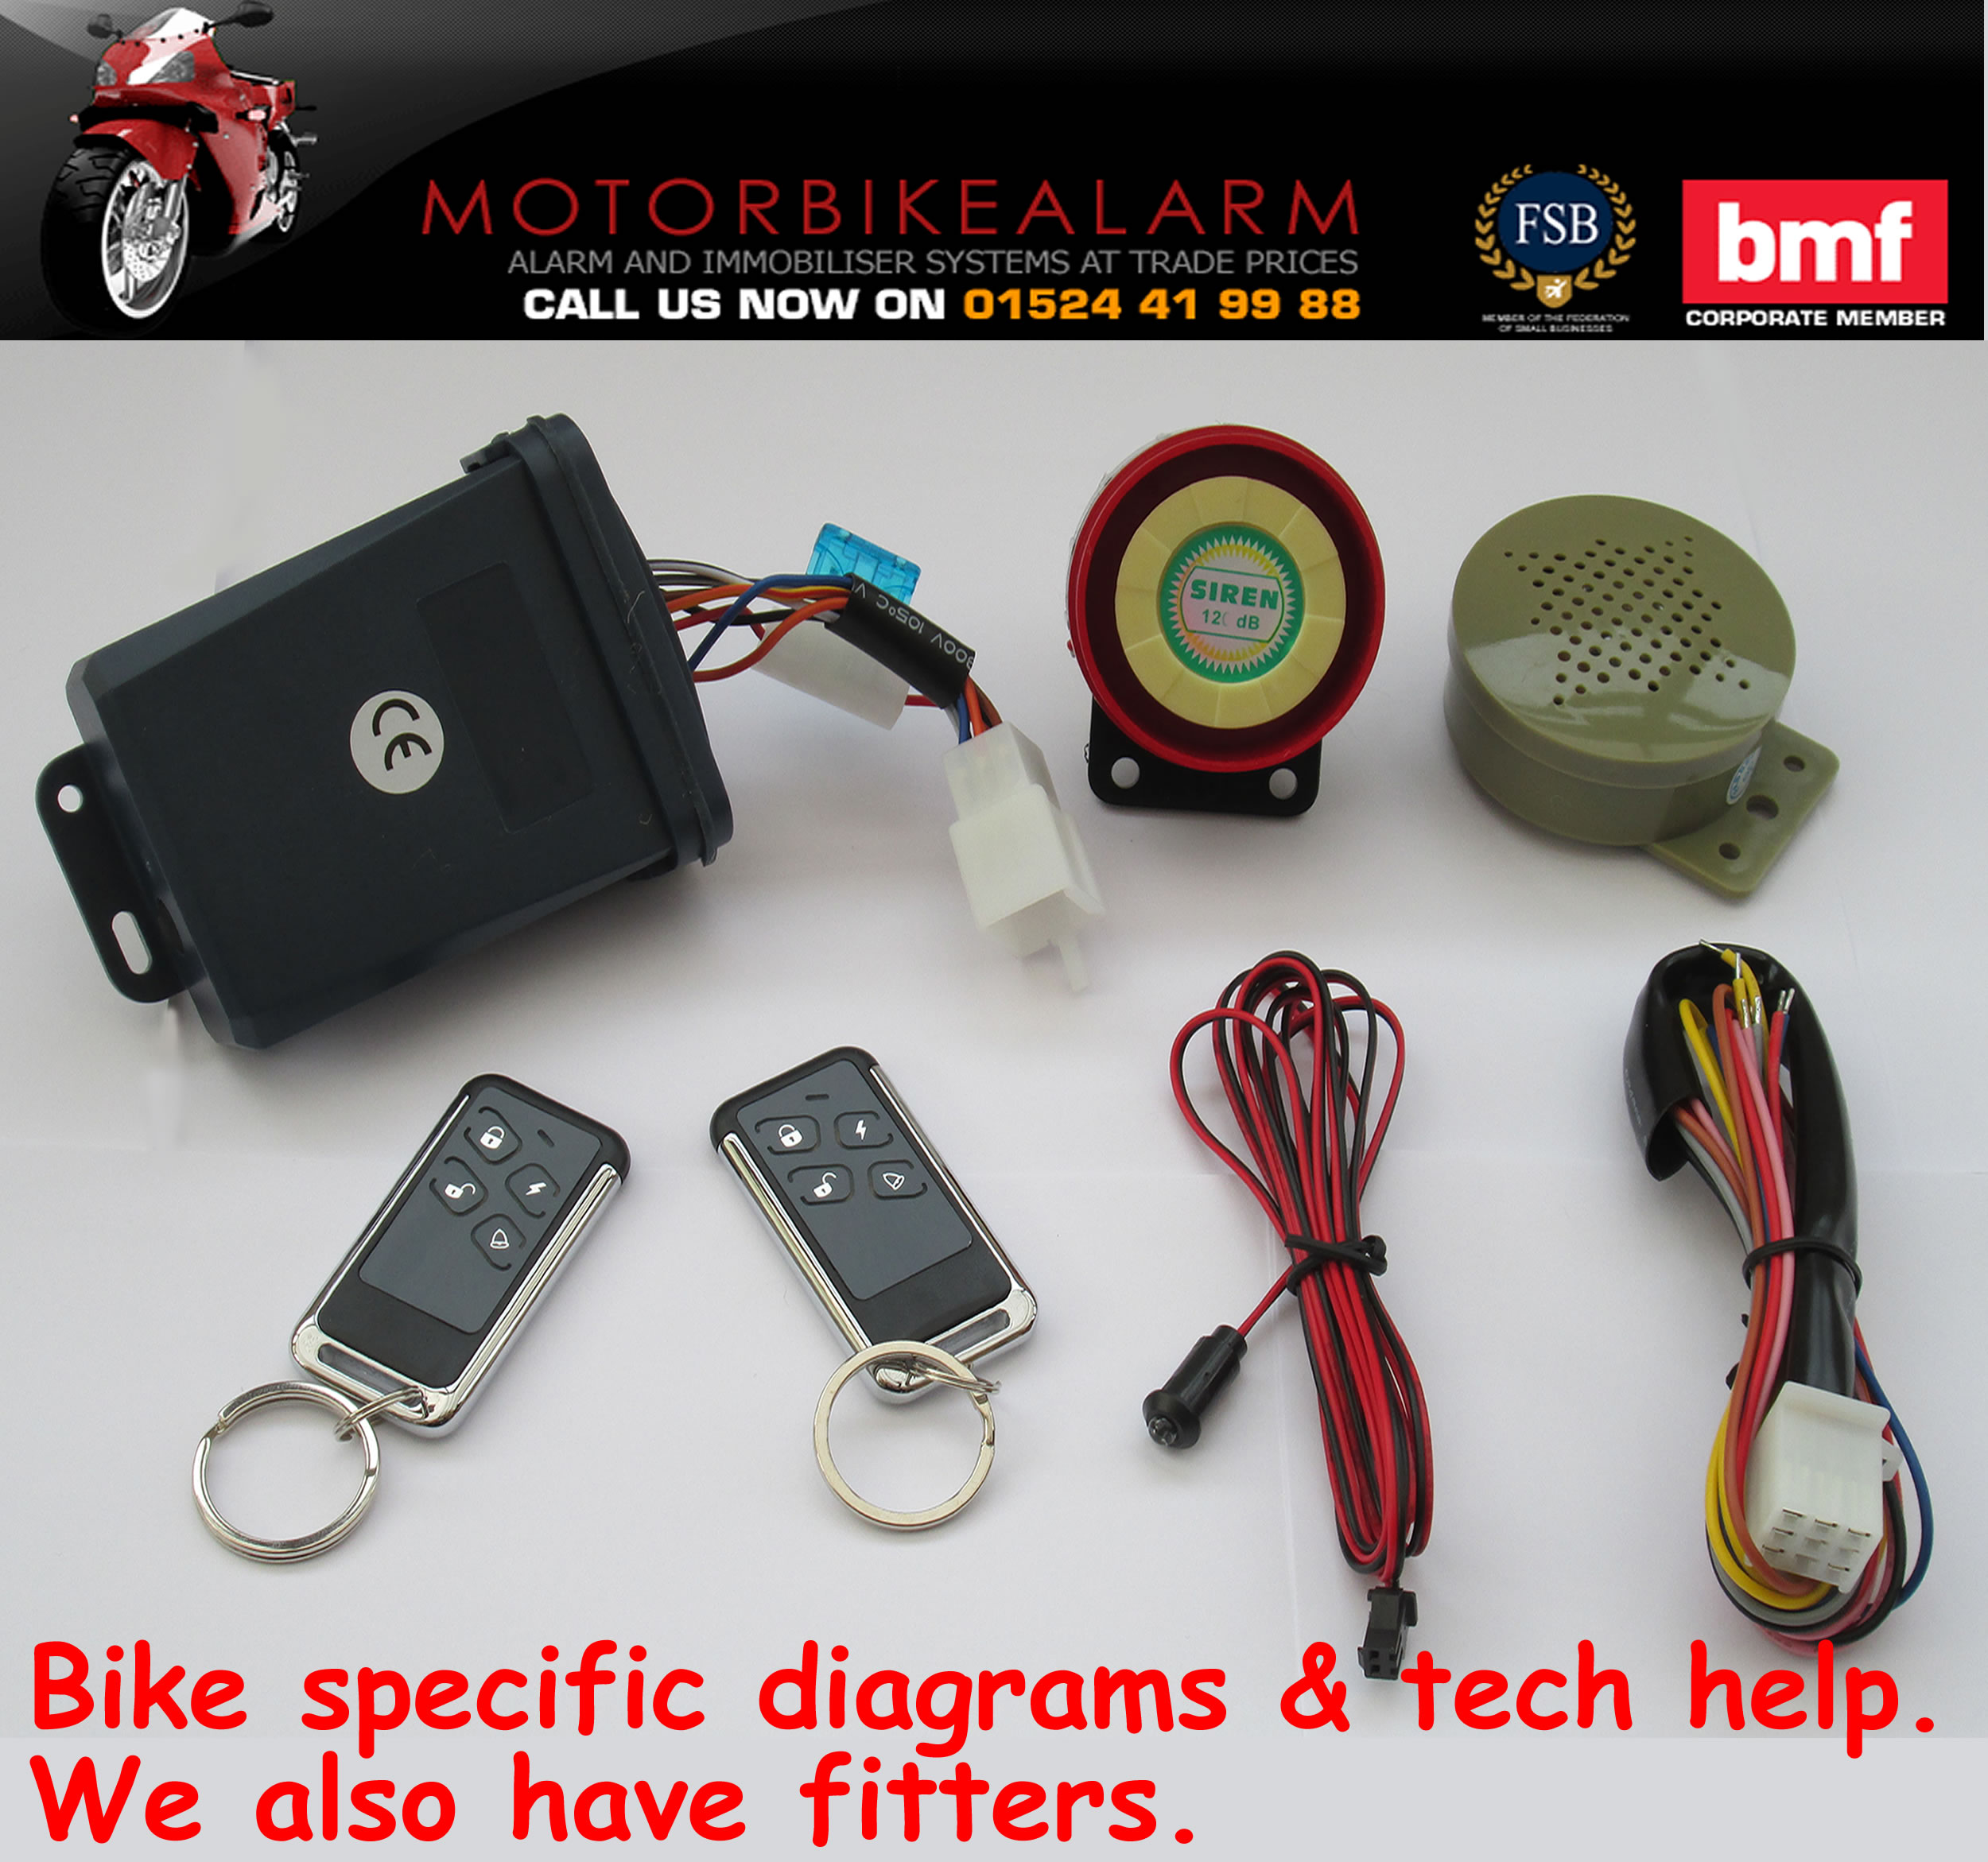 Cyclone Car Alarm Wiring Diagram Free Download Basic Ncs C 11 Talking Motorbike And Immobiliser System Viper At